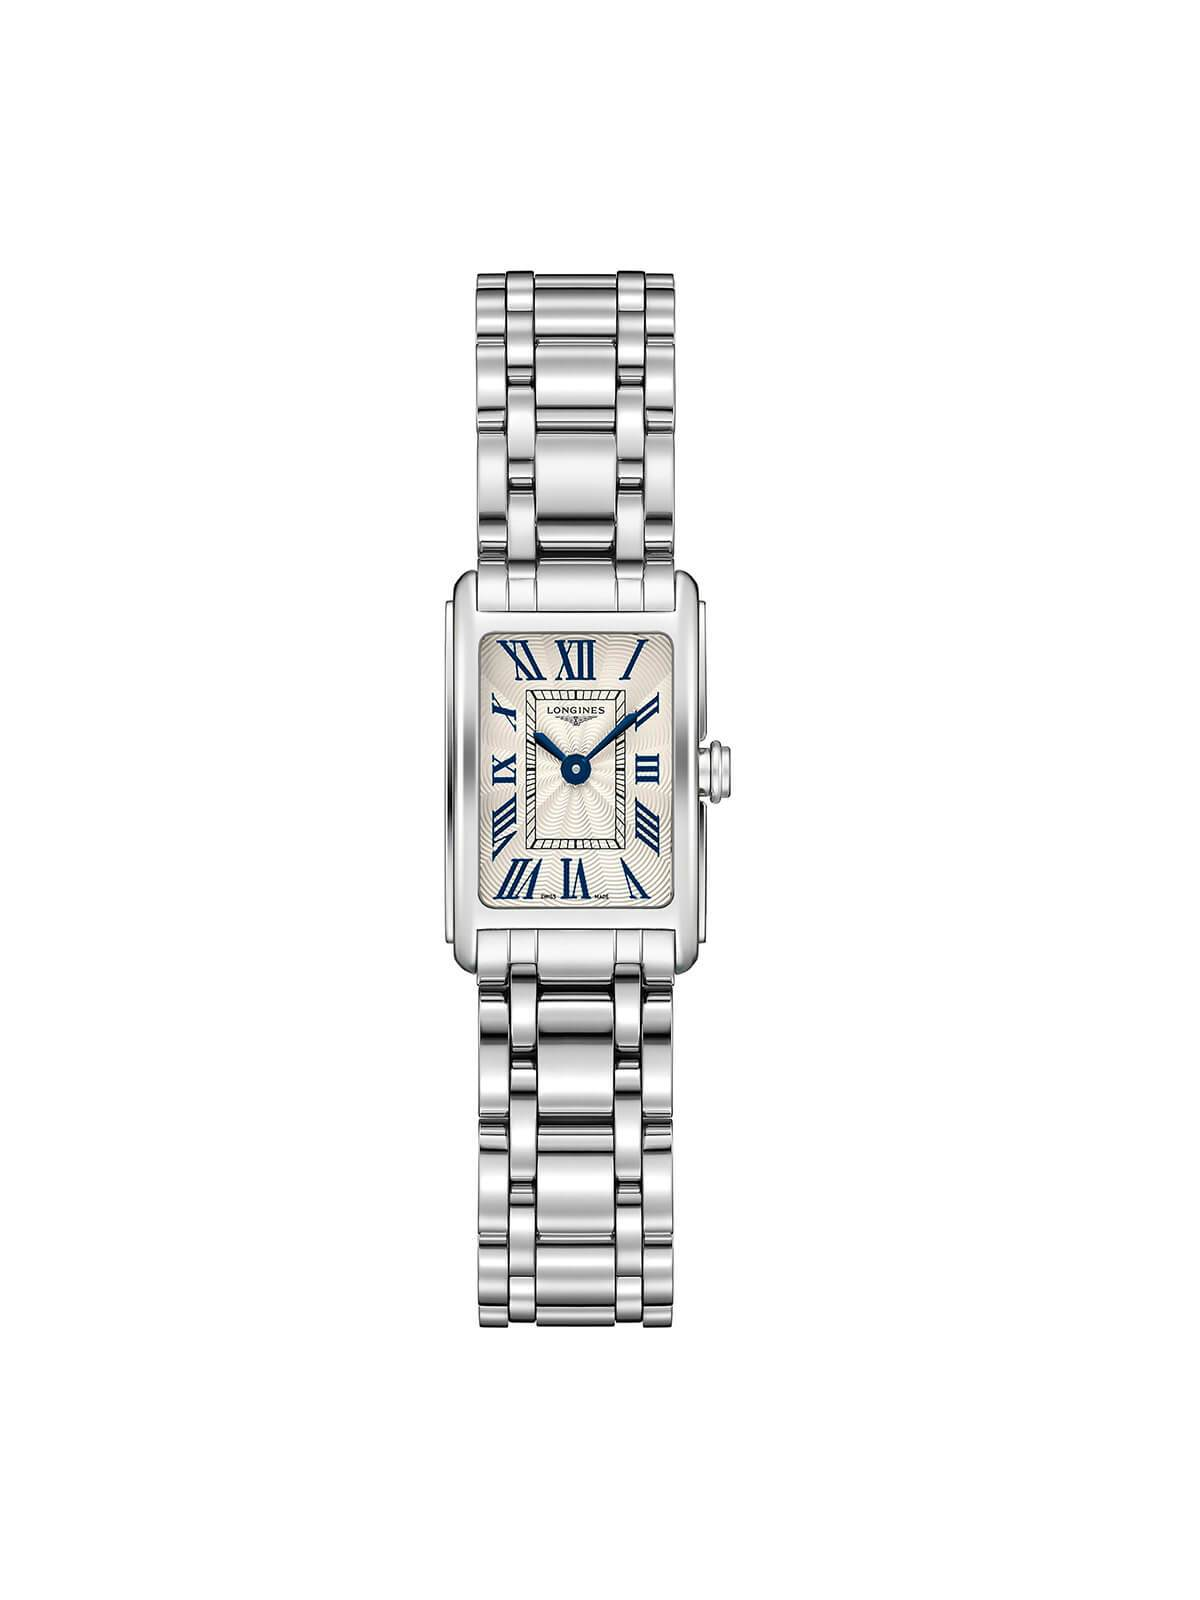 Longines Ladies 17.7 x 27mm DolceVita Stainless Steel Quartz Watch on Bracelet L5.258.4.71.6